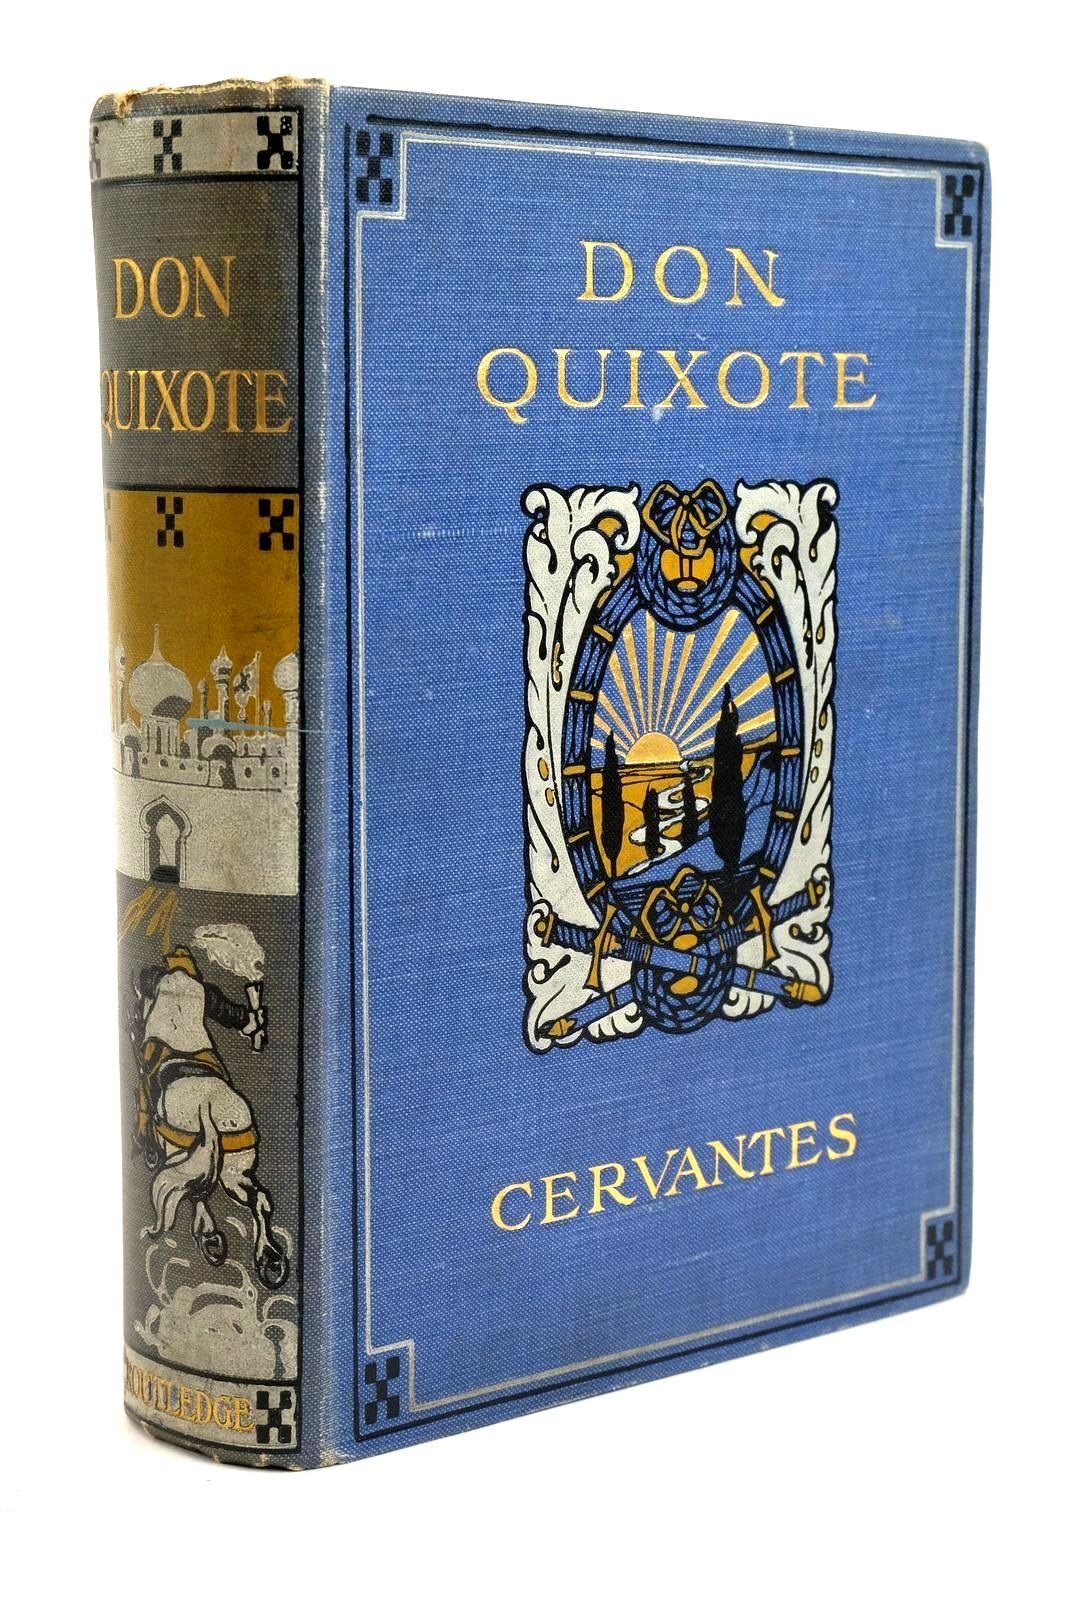 Photo of THE ADVENTURES OF DON QUIXOTE DE LA MANCHA written by De Cervantes, Miguel Jones, M. illustrated by Gilbert, John et al., published by George Routledge and Sons Limited (STOCK CODE: 1321788)  for sale by Stella & Rose's Books